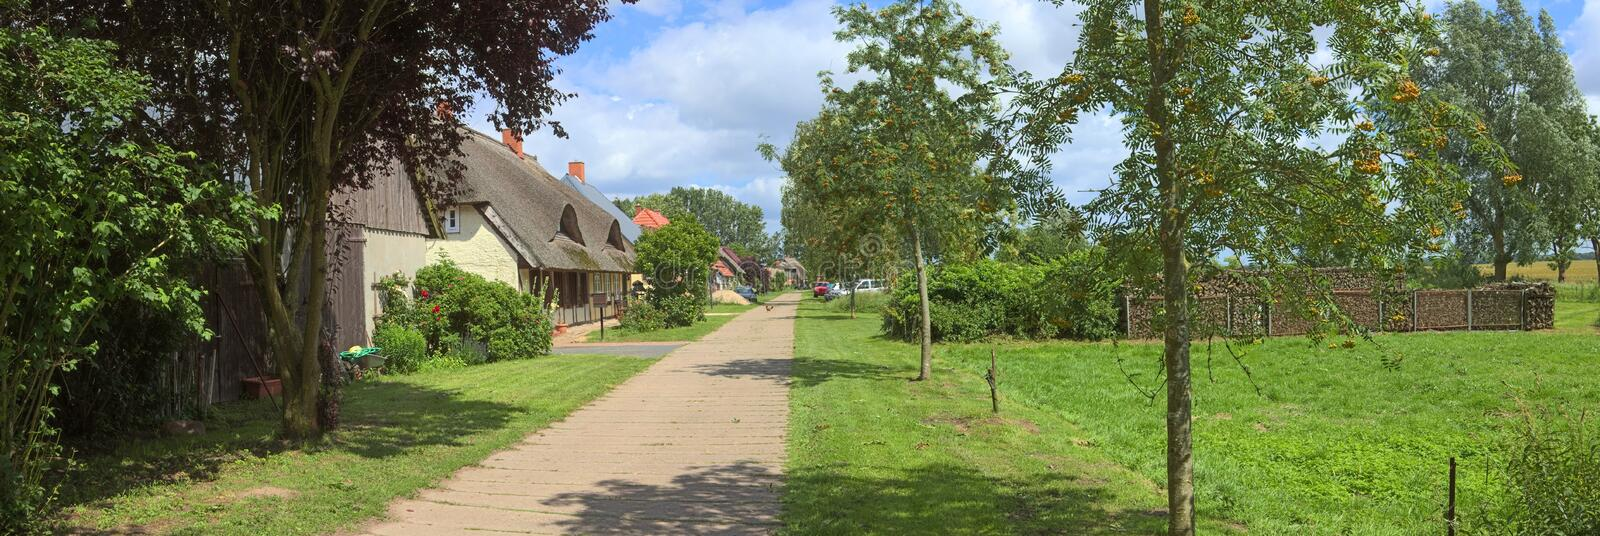 Download Street With Various Houses Listed As Monuments At Jager, Mecklenburg-Vorpommern, Germany Stock Photo - Image of stitched, jager: 98584912